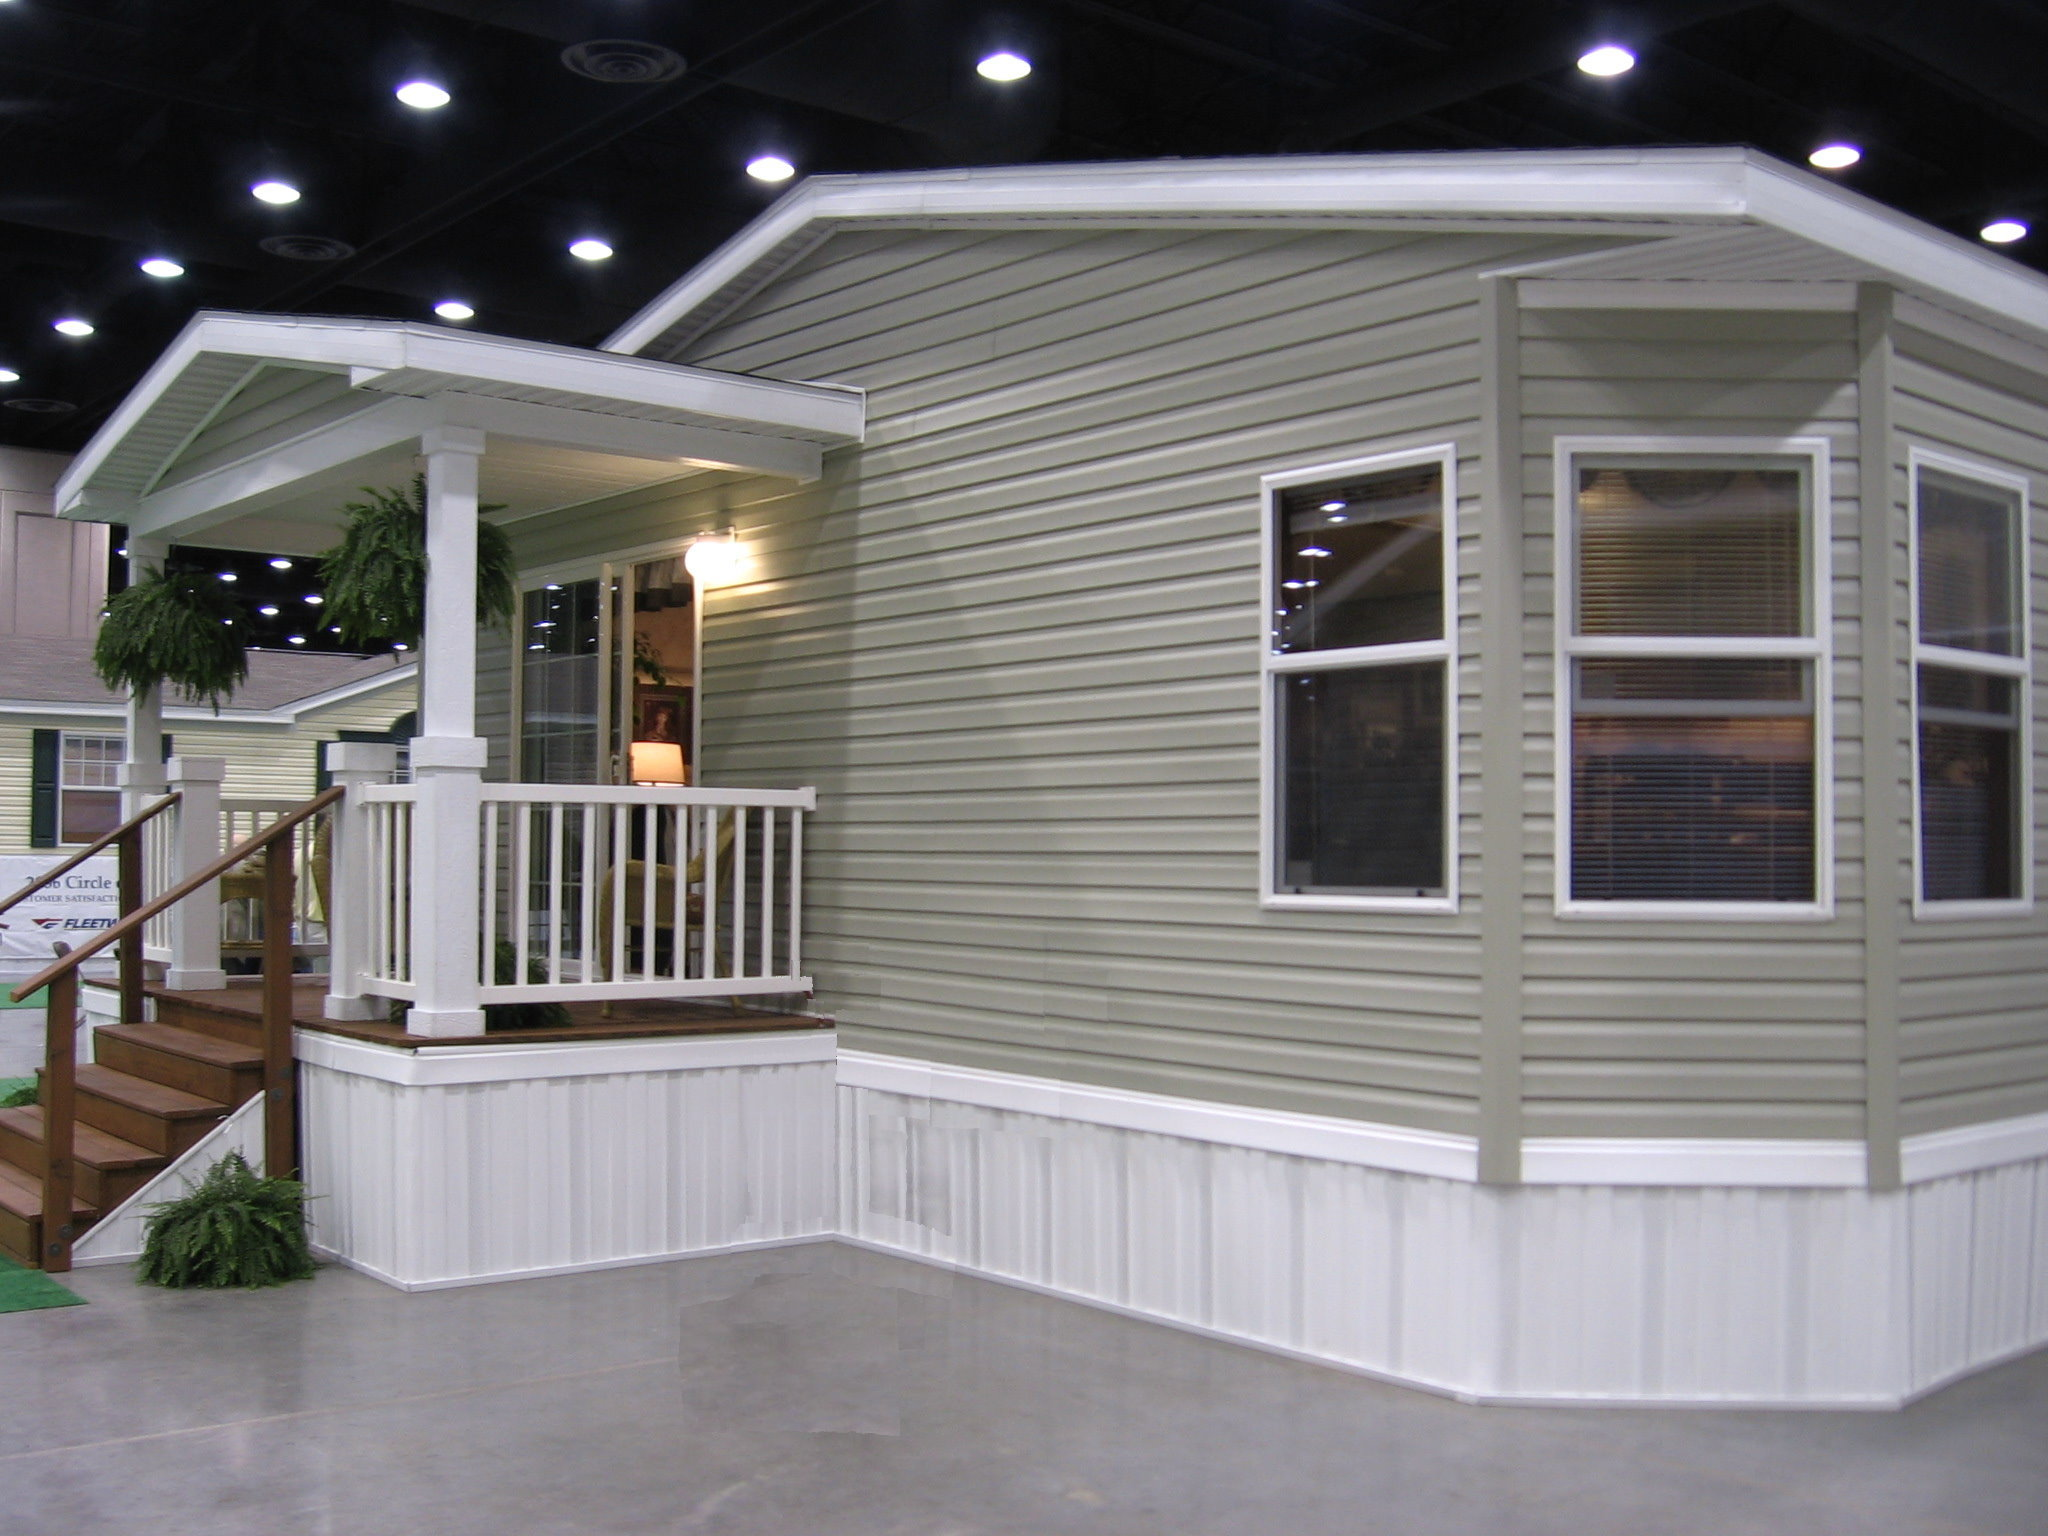 Mobile Home Porches | Mobile Home Patio Enclosures | Mobile Home Decks and Porches